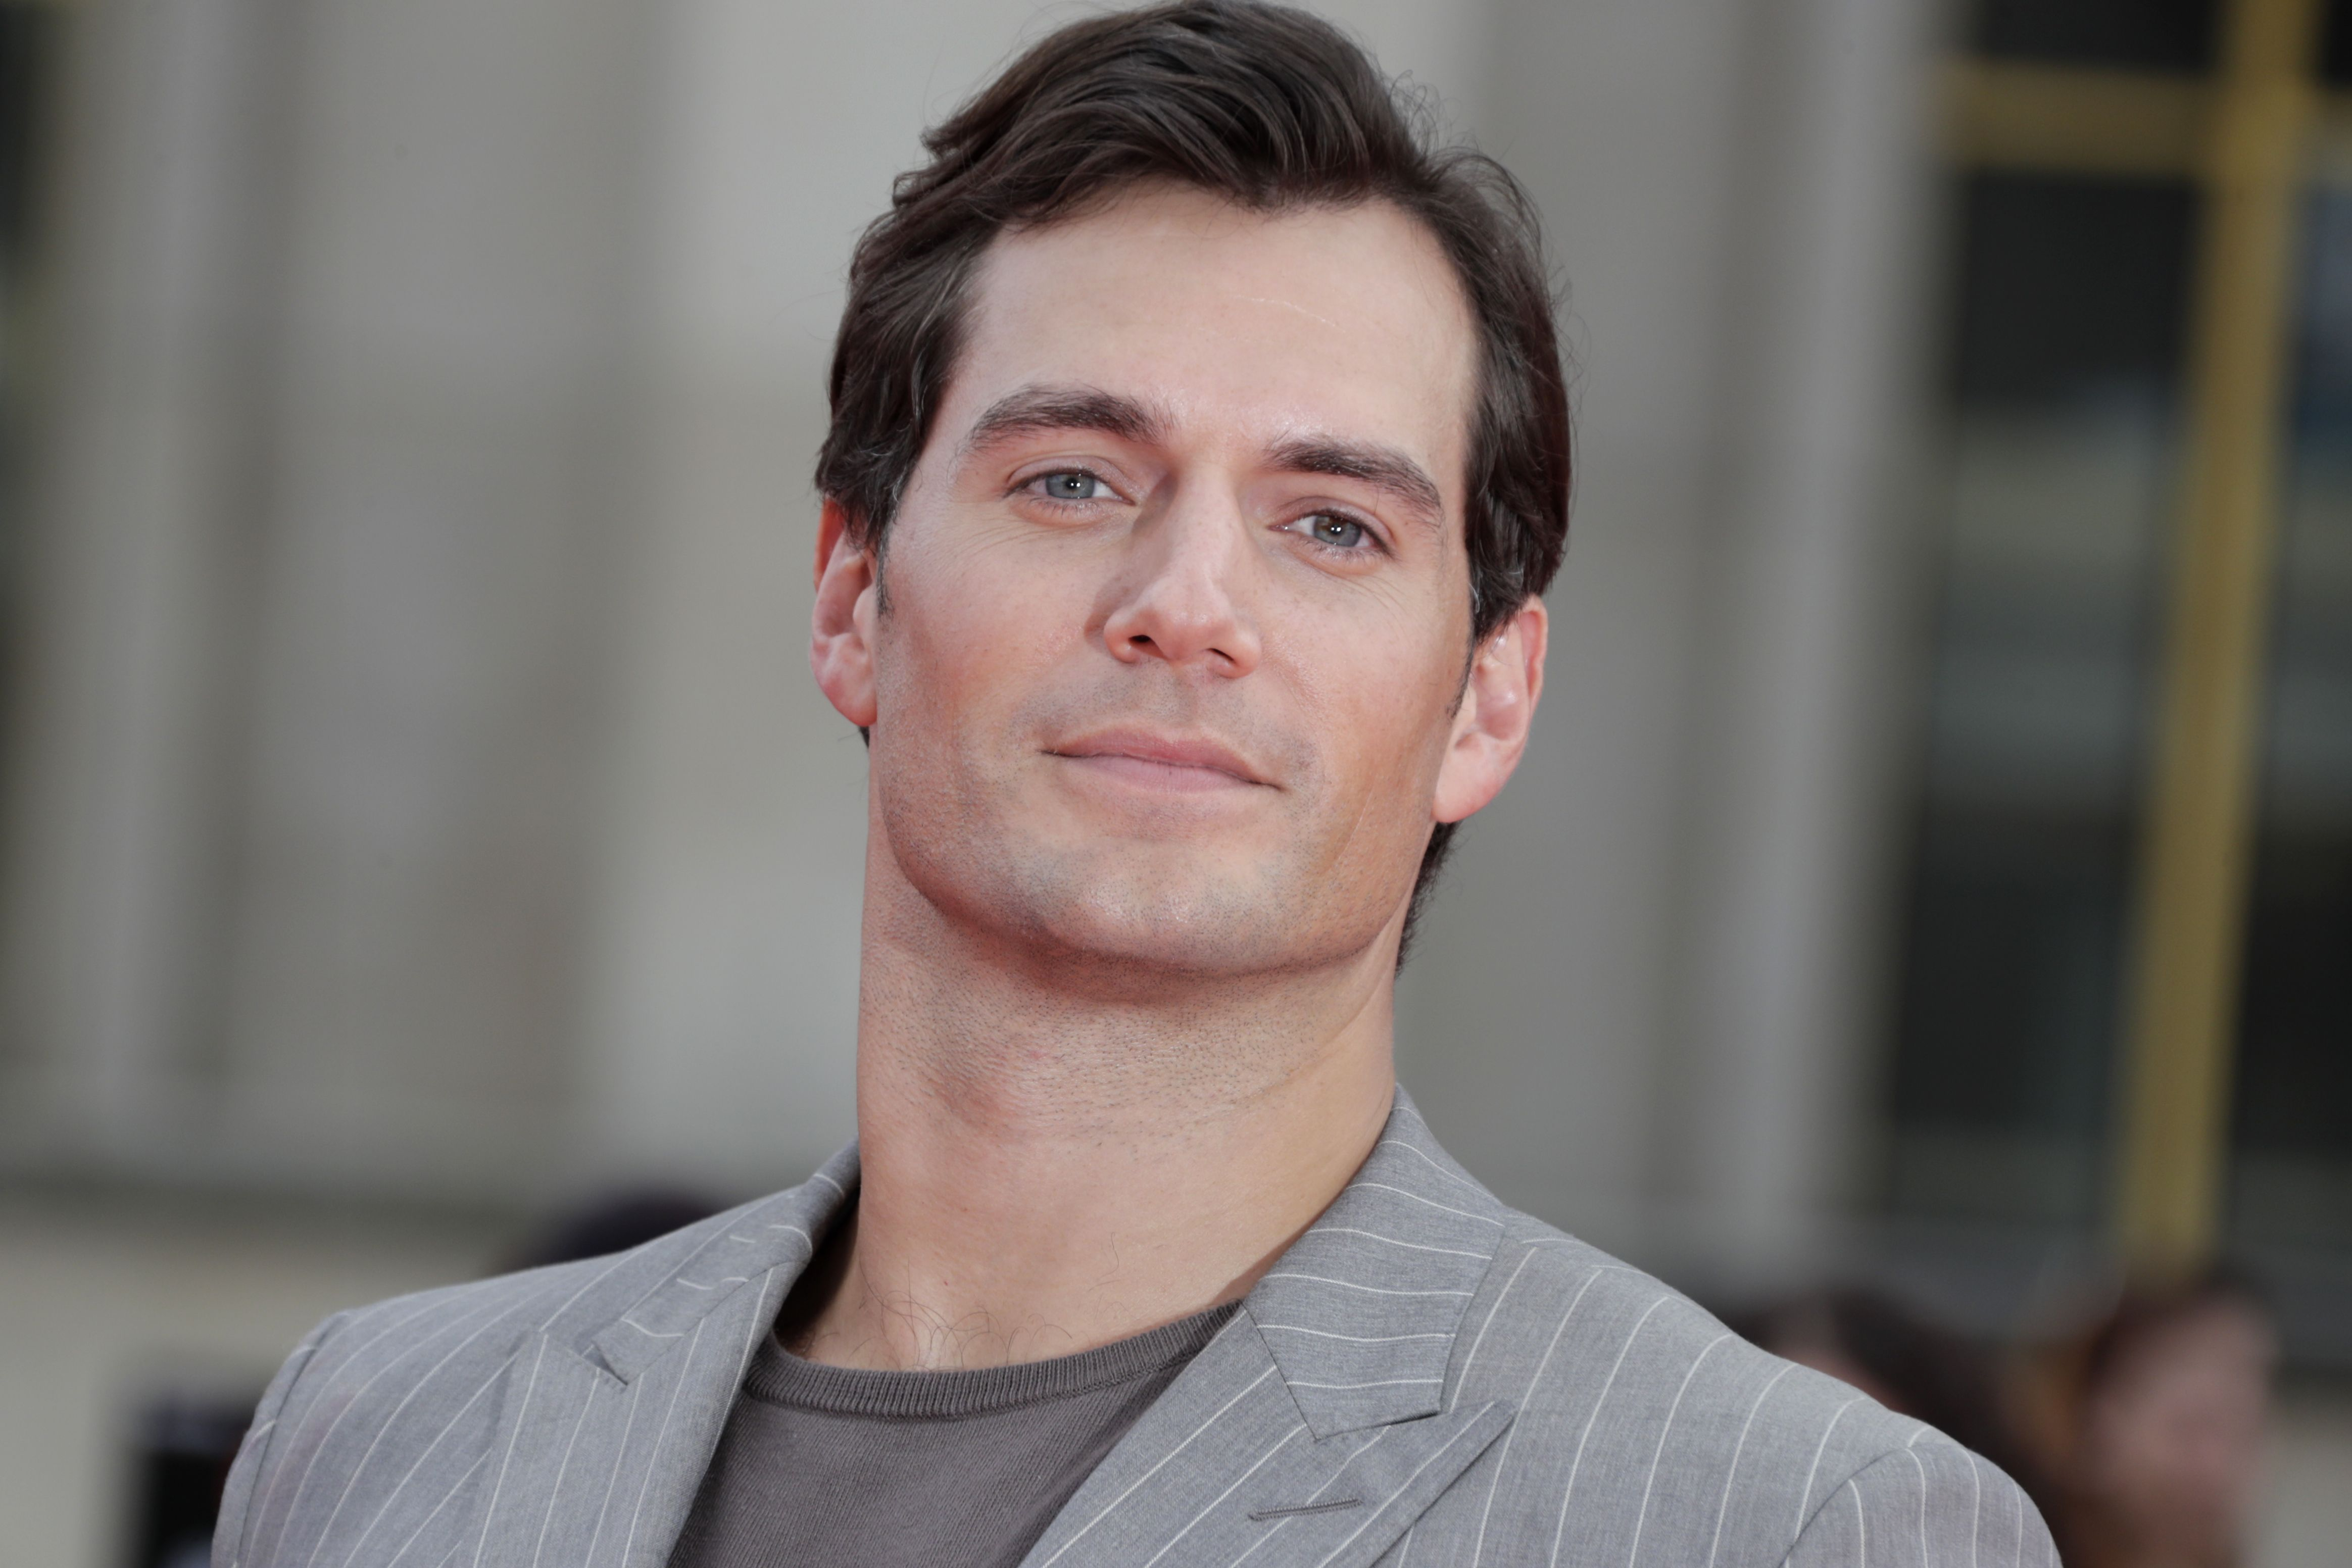 What we can all learn from Henry Cavill's health and wellbeing rituals